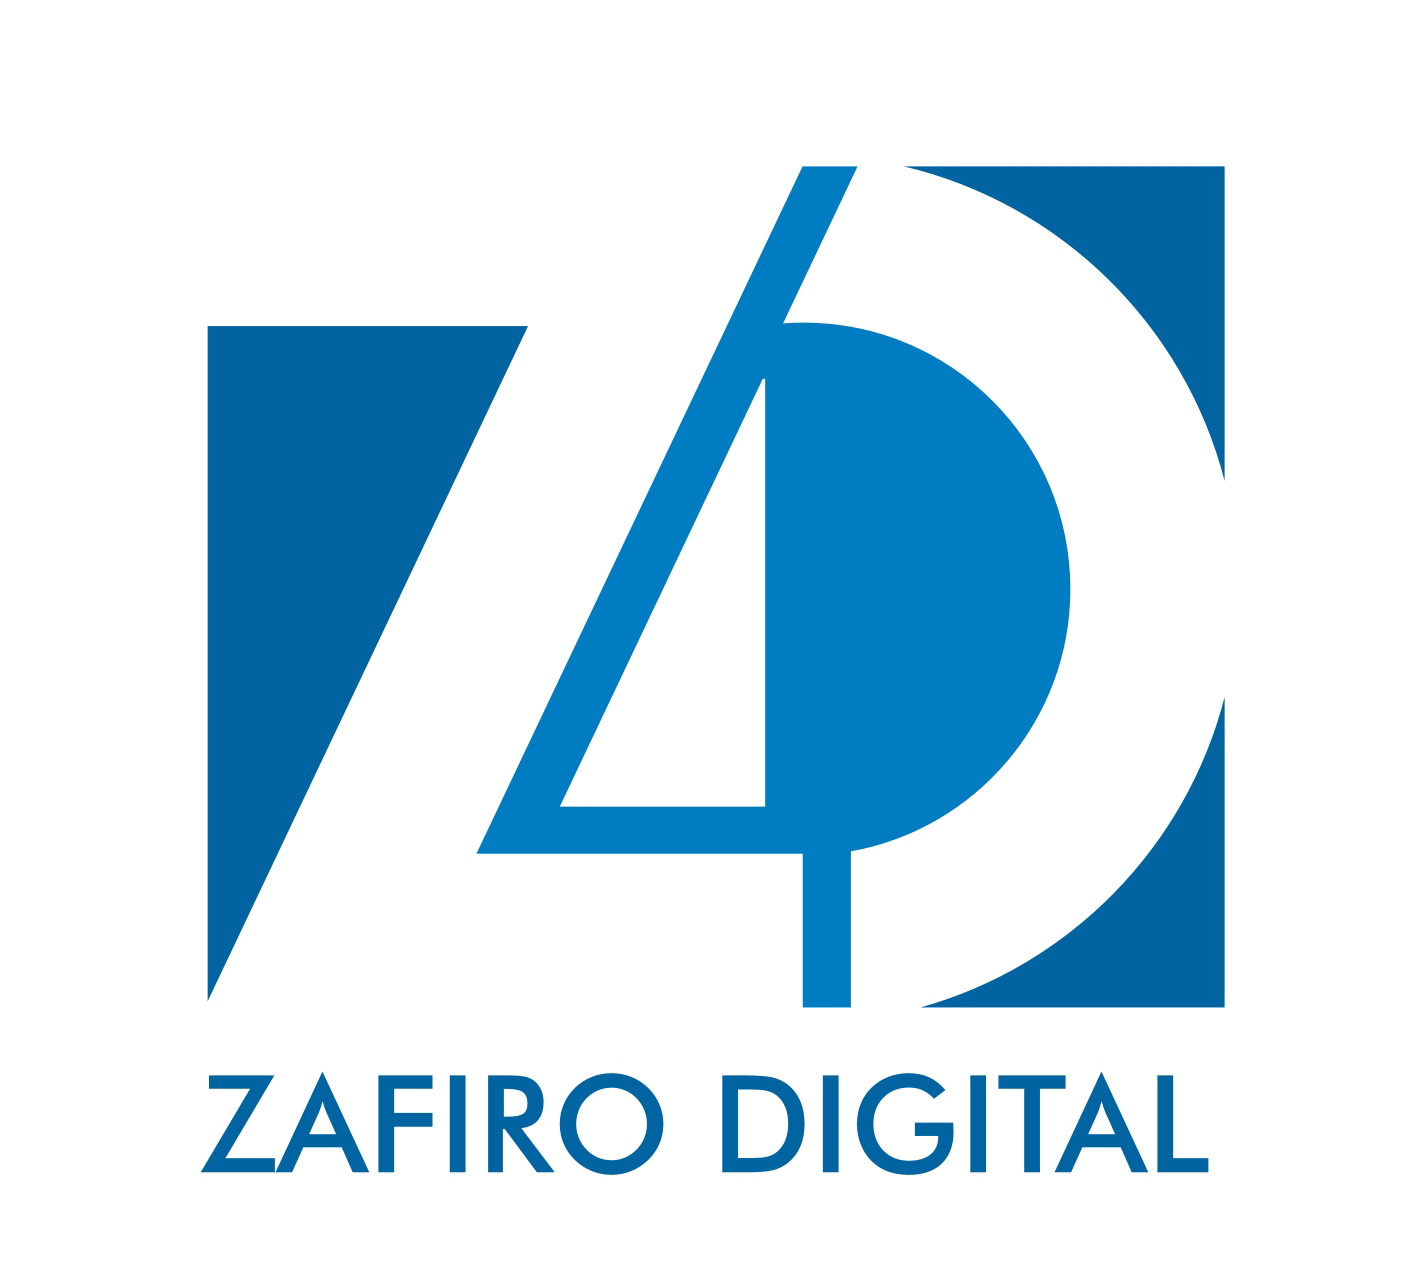 ZAFIRO DIGITAL